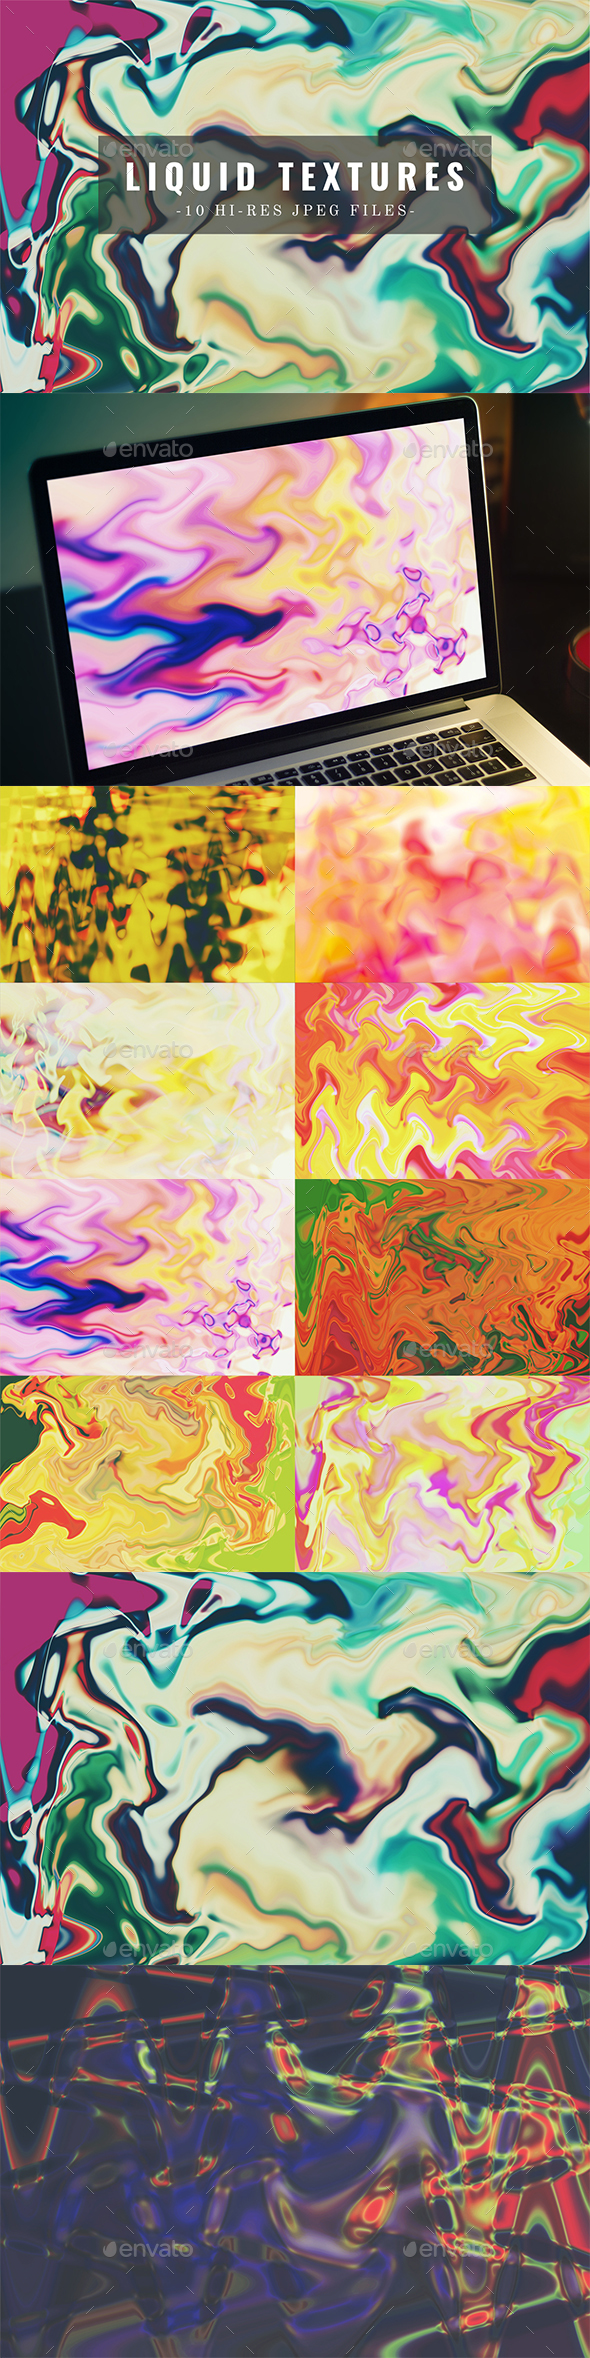 10 Abstract Liquid Backgrounds - Abstract Backgrounds